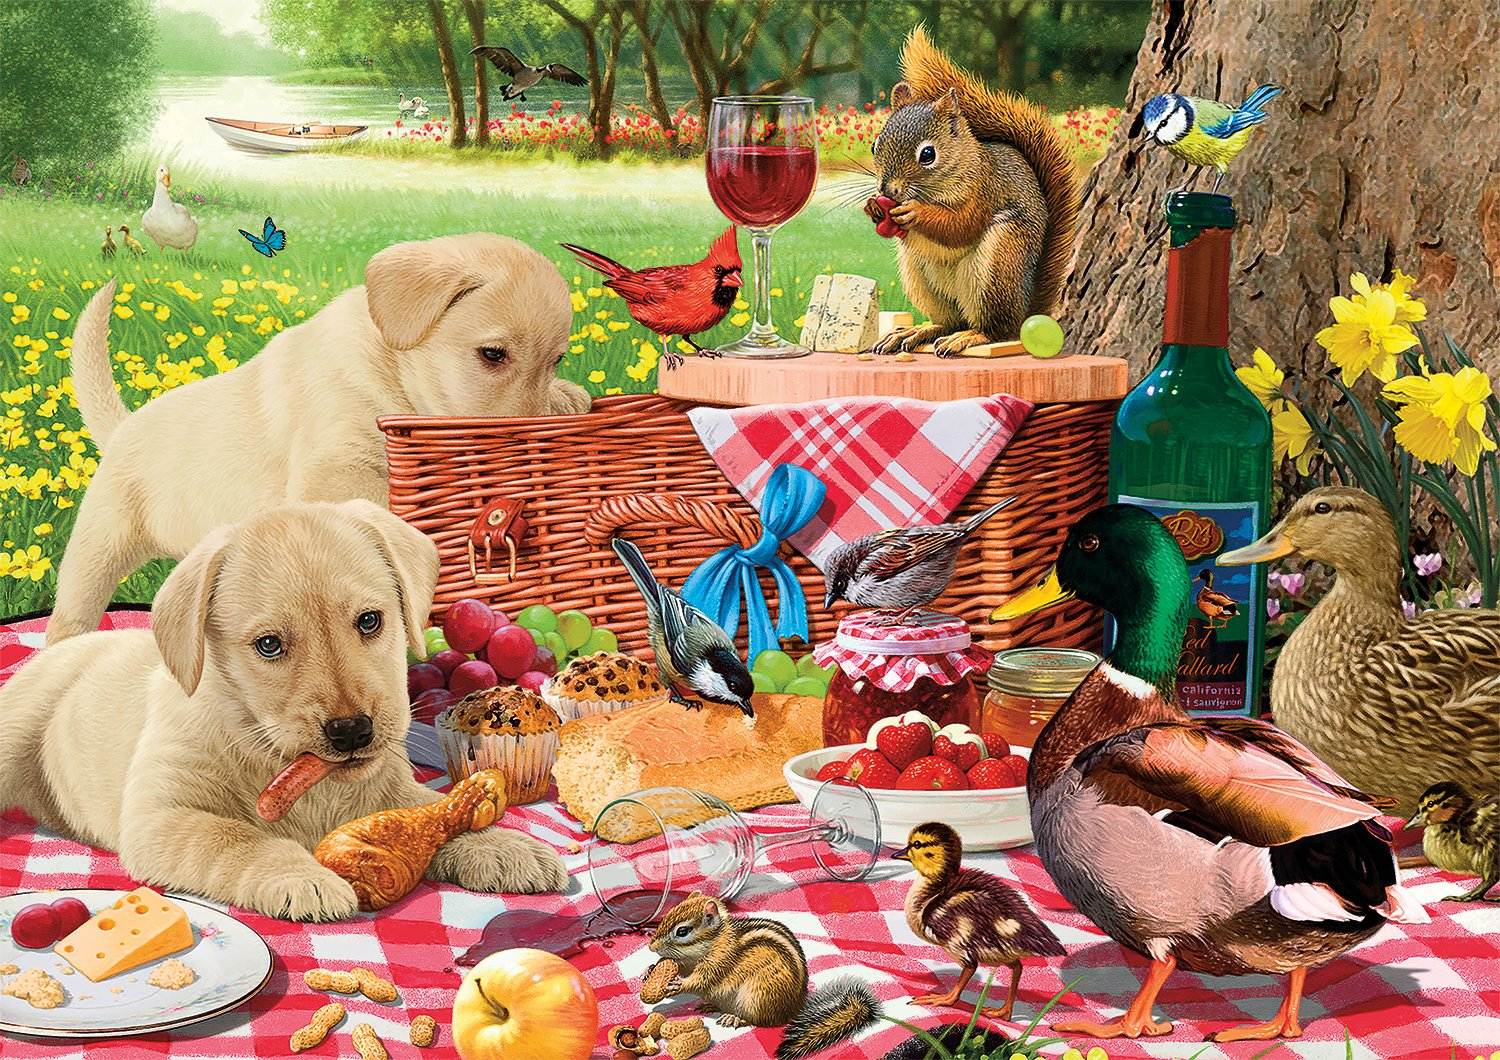 Buffalo Games - Adorable Animals - Picnic Raiders - 300 Large Piece Jigsaw Puzzle by Buffalo Games (Image #1)